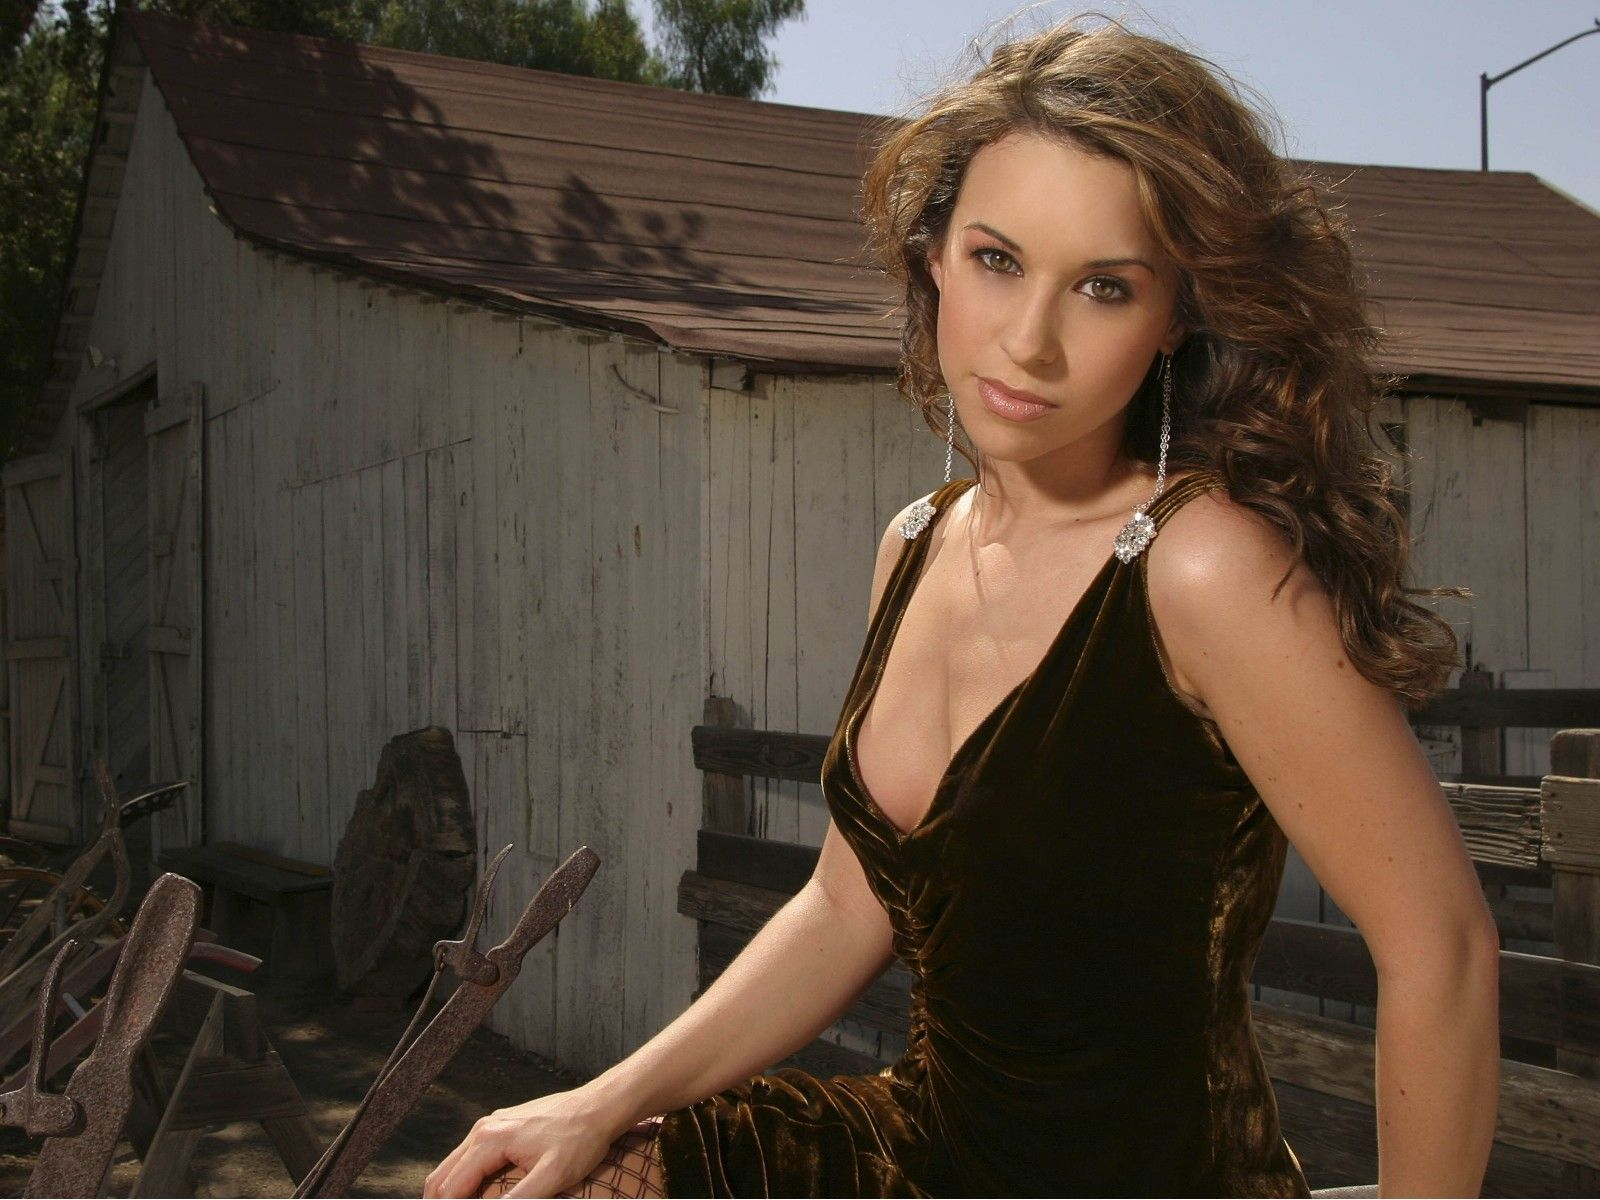 Watch Lacy chabert - request Nude Celebs Forum video